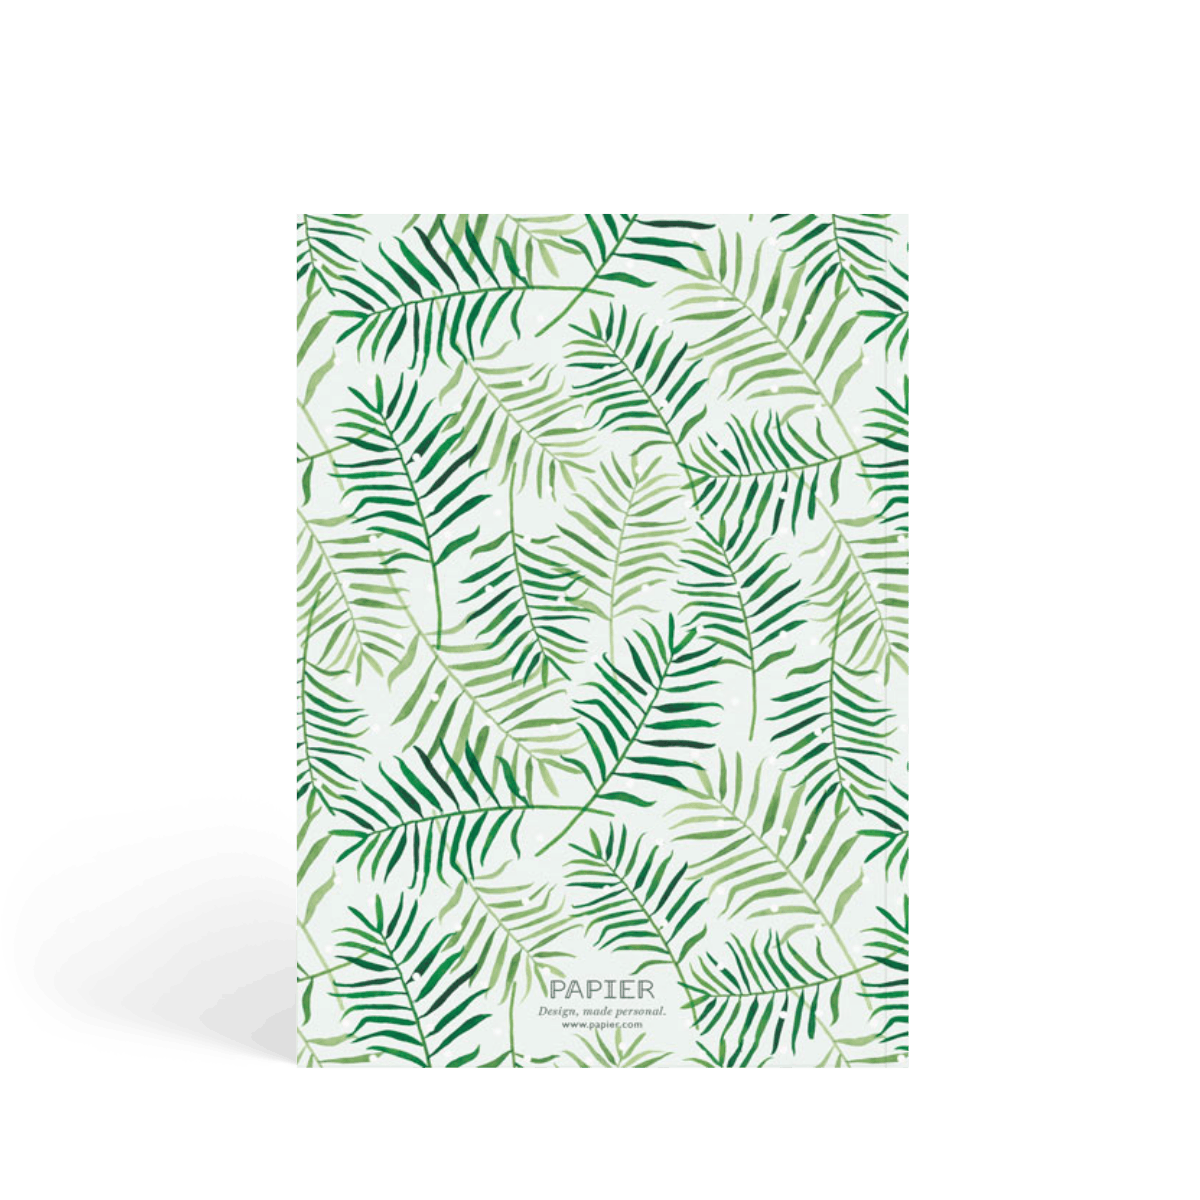 Https%3a%2f%2fwww.papier.com%2fproduct image%2f14264%2f5%2fpalm leaves 3810 back 1479902023.png?ixlib=rb 1.1